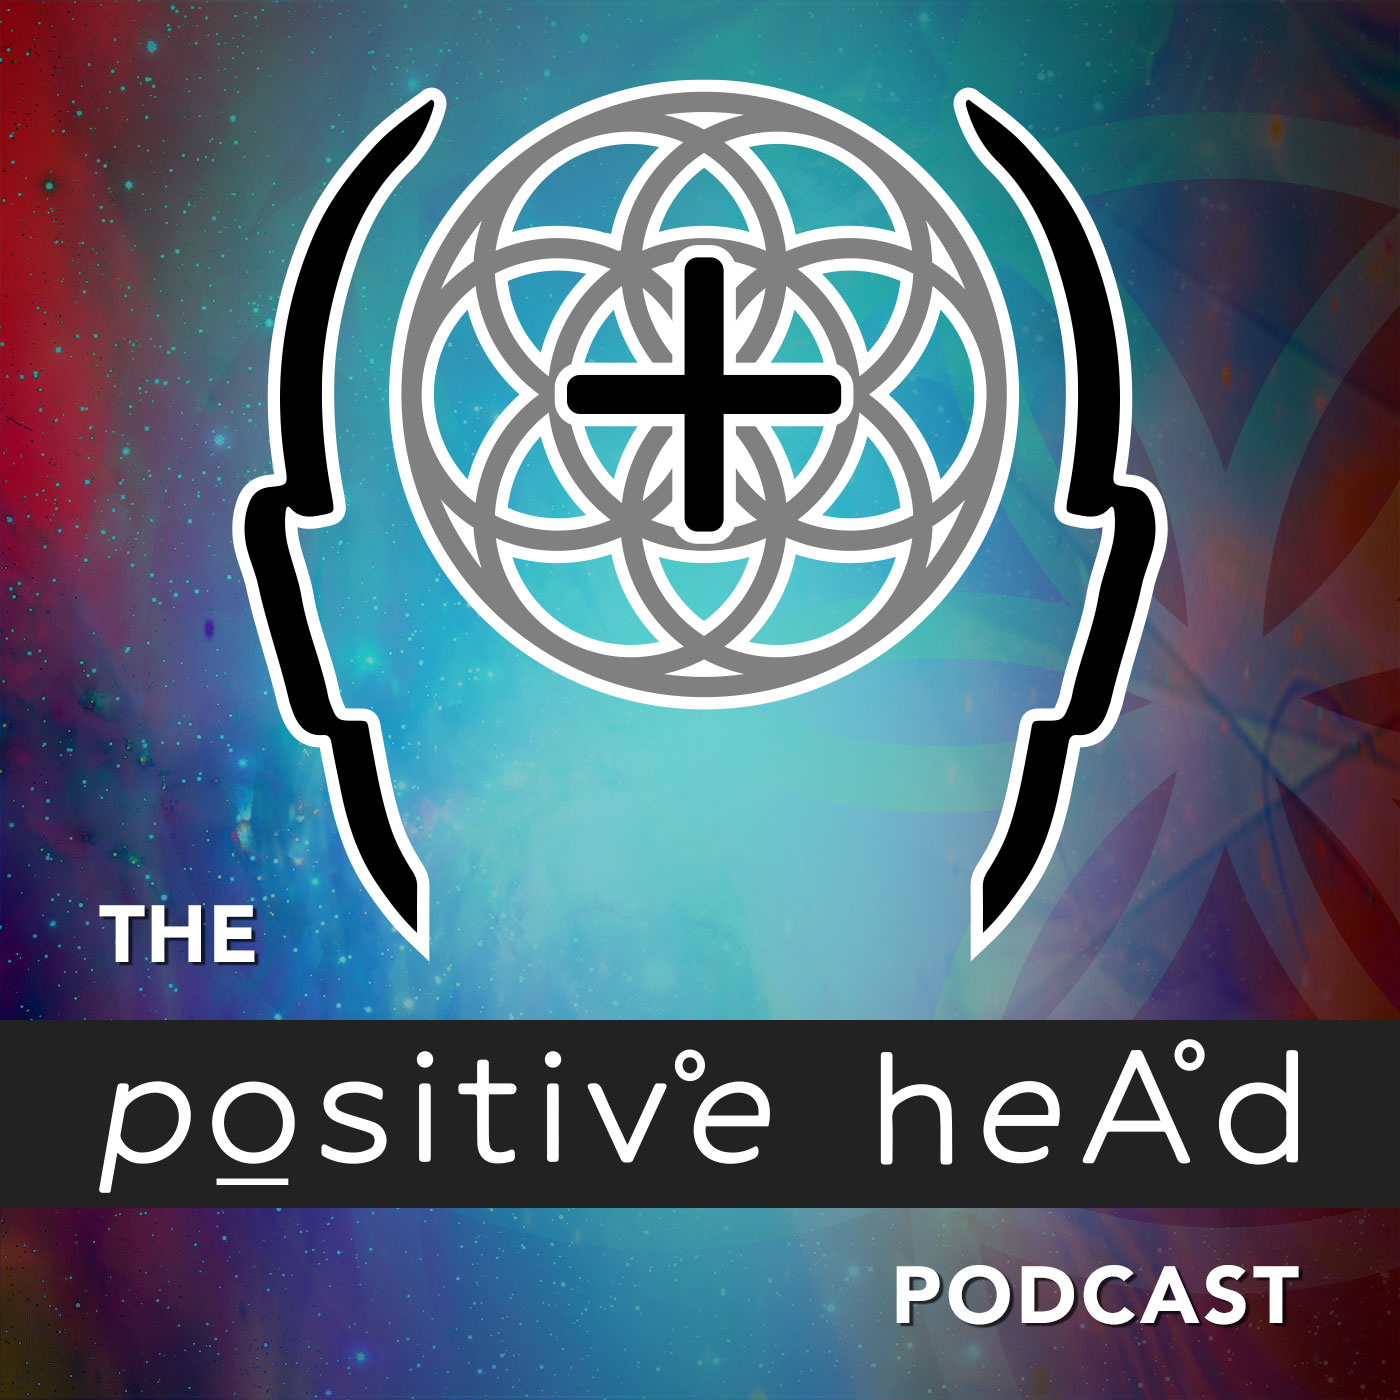 Podcast Episode: 1231: The Medicine of Being in the Here and Now